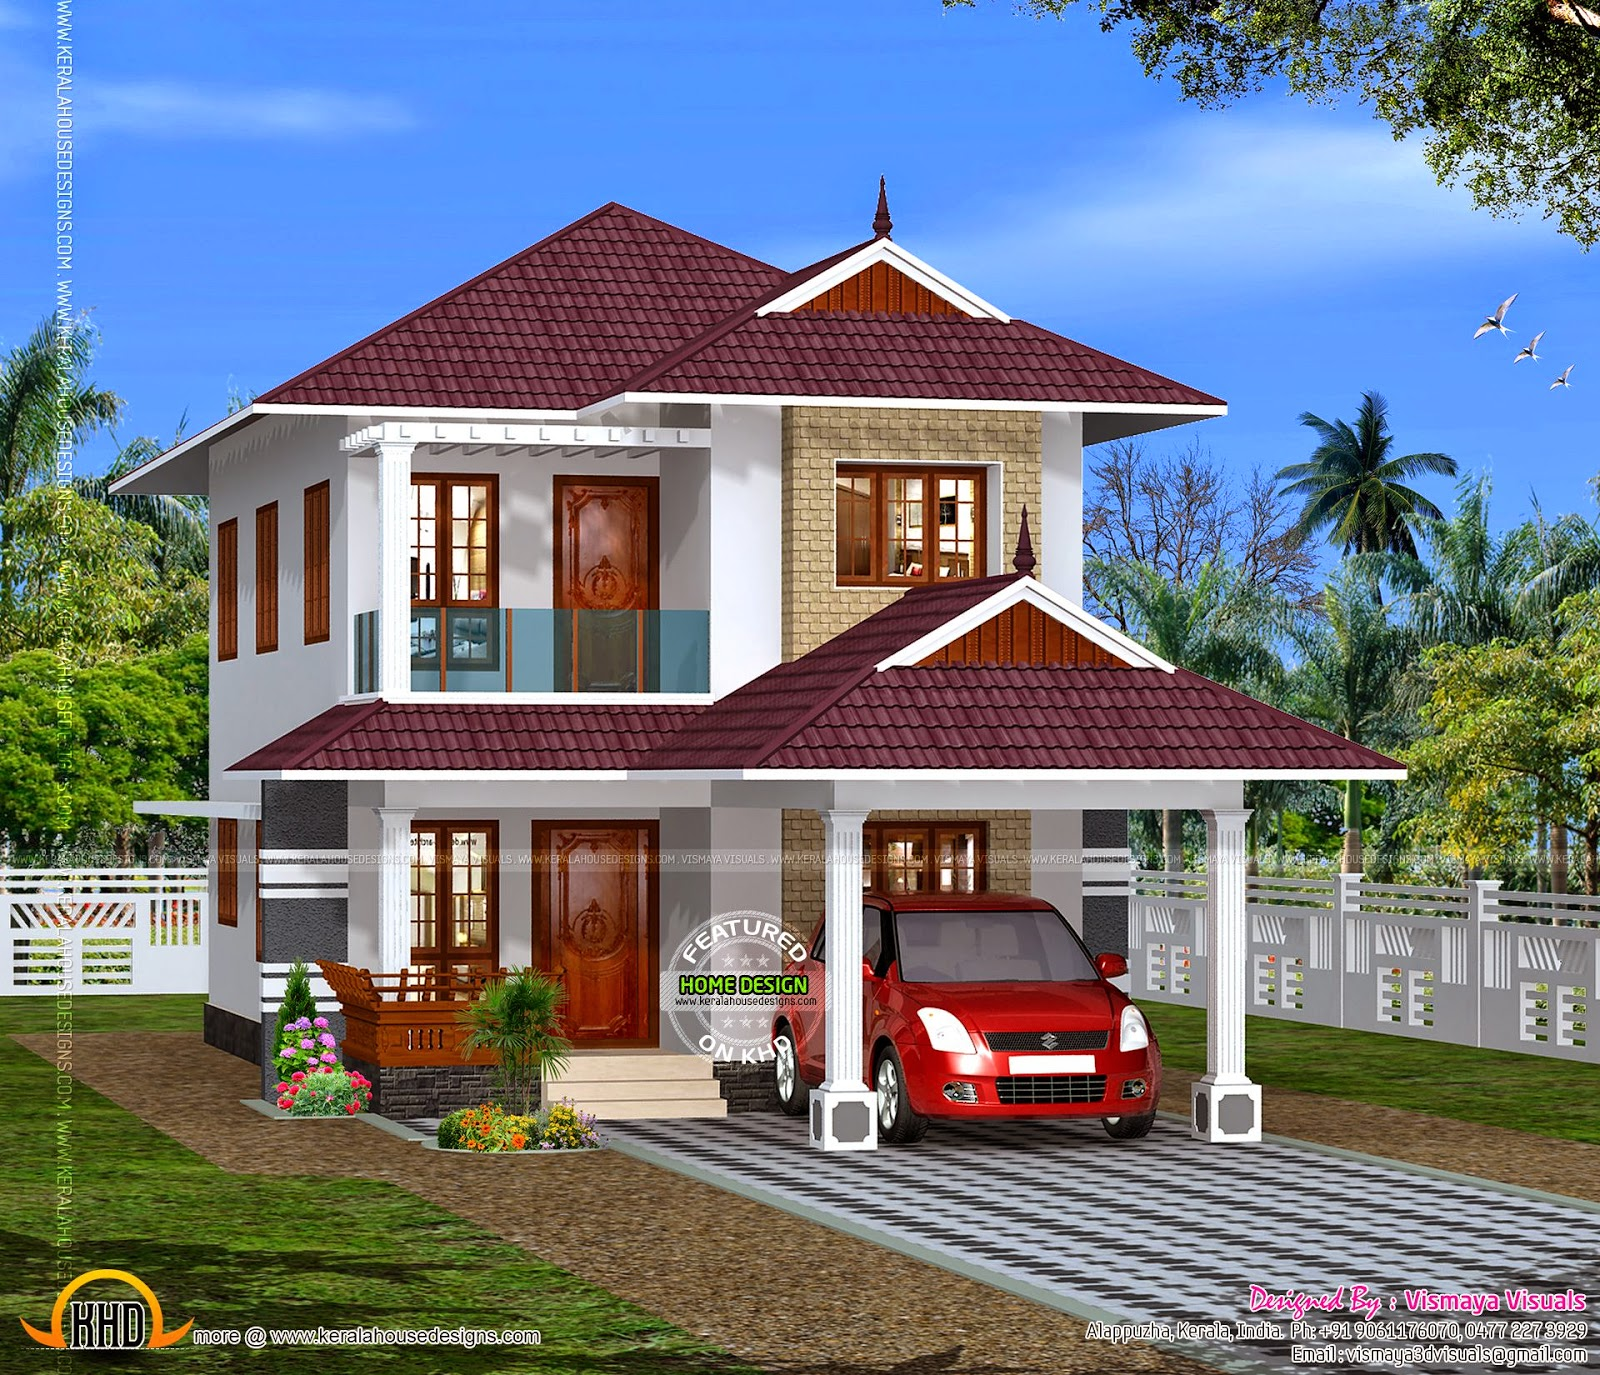 Clean box type house exterior keralahousedesigns for Types house designs